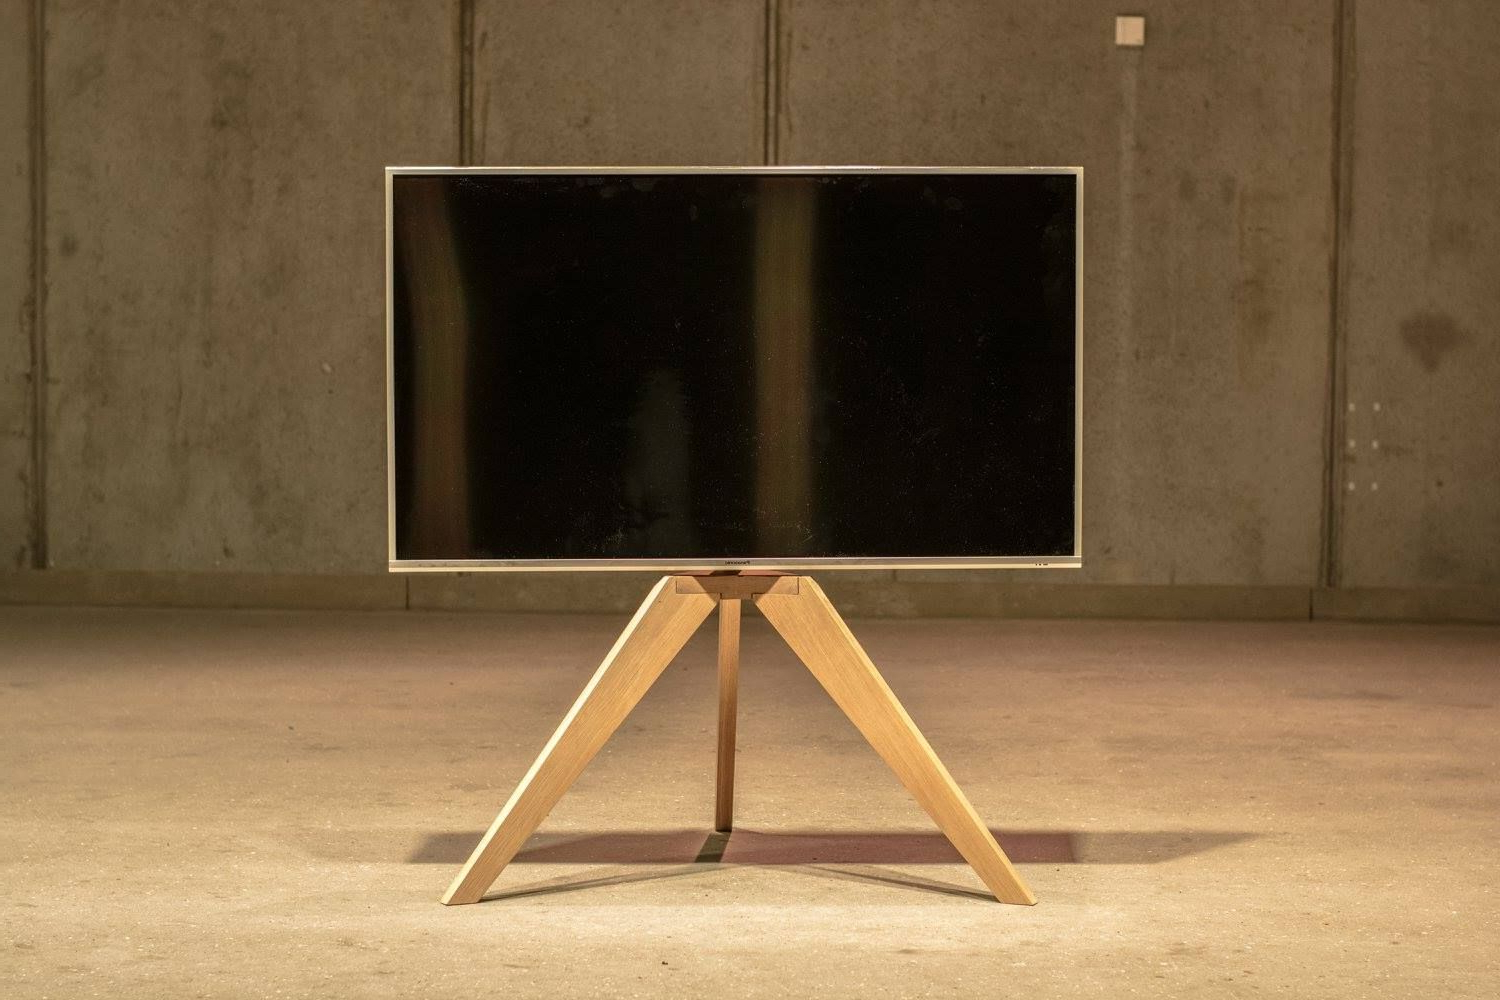 Best Buy Tv Mounts Stands 65 Tripod Wood Dual Monitor Floor Stand With Current Wood Tv Floor Stands (View 3 of 20)